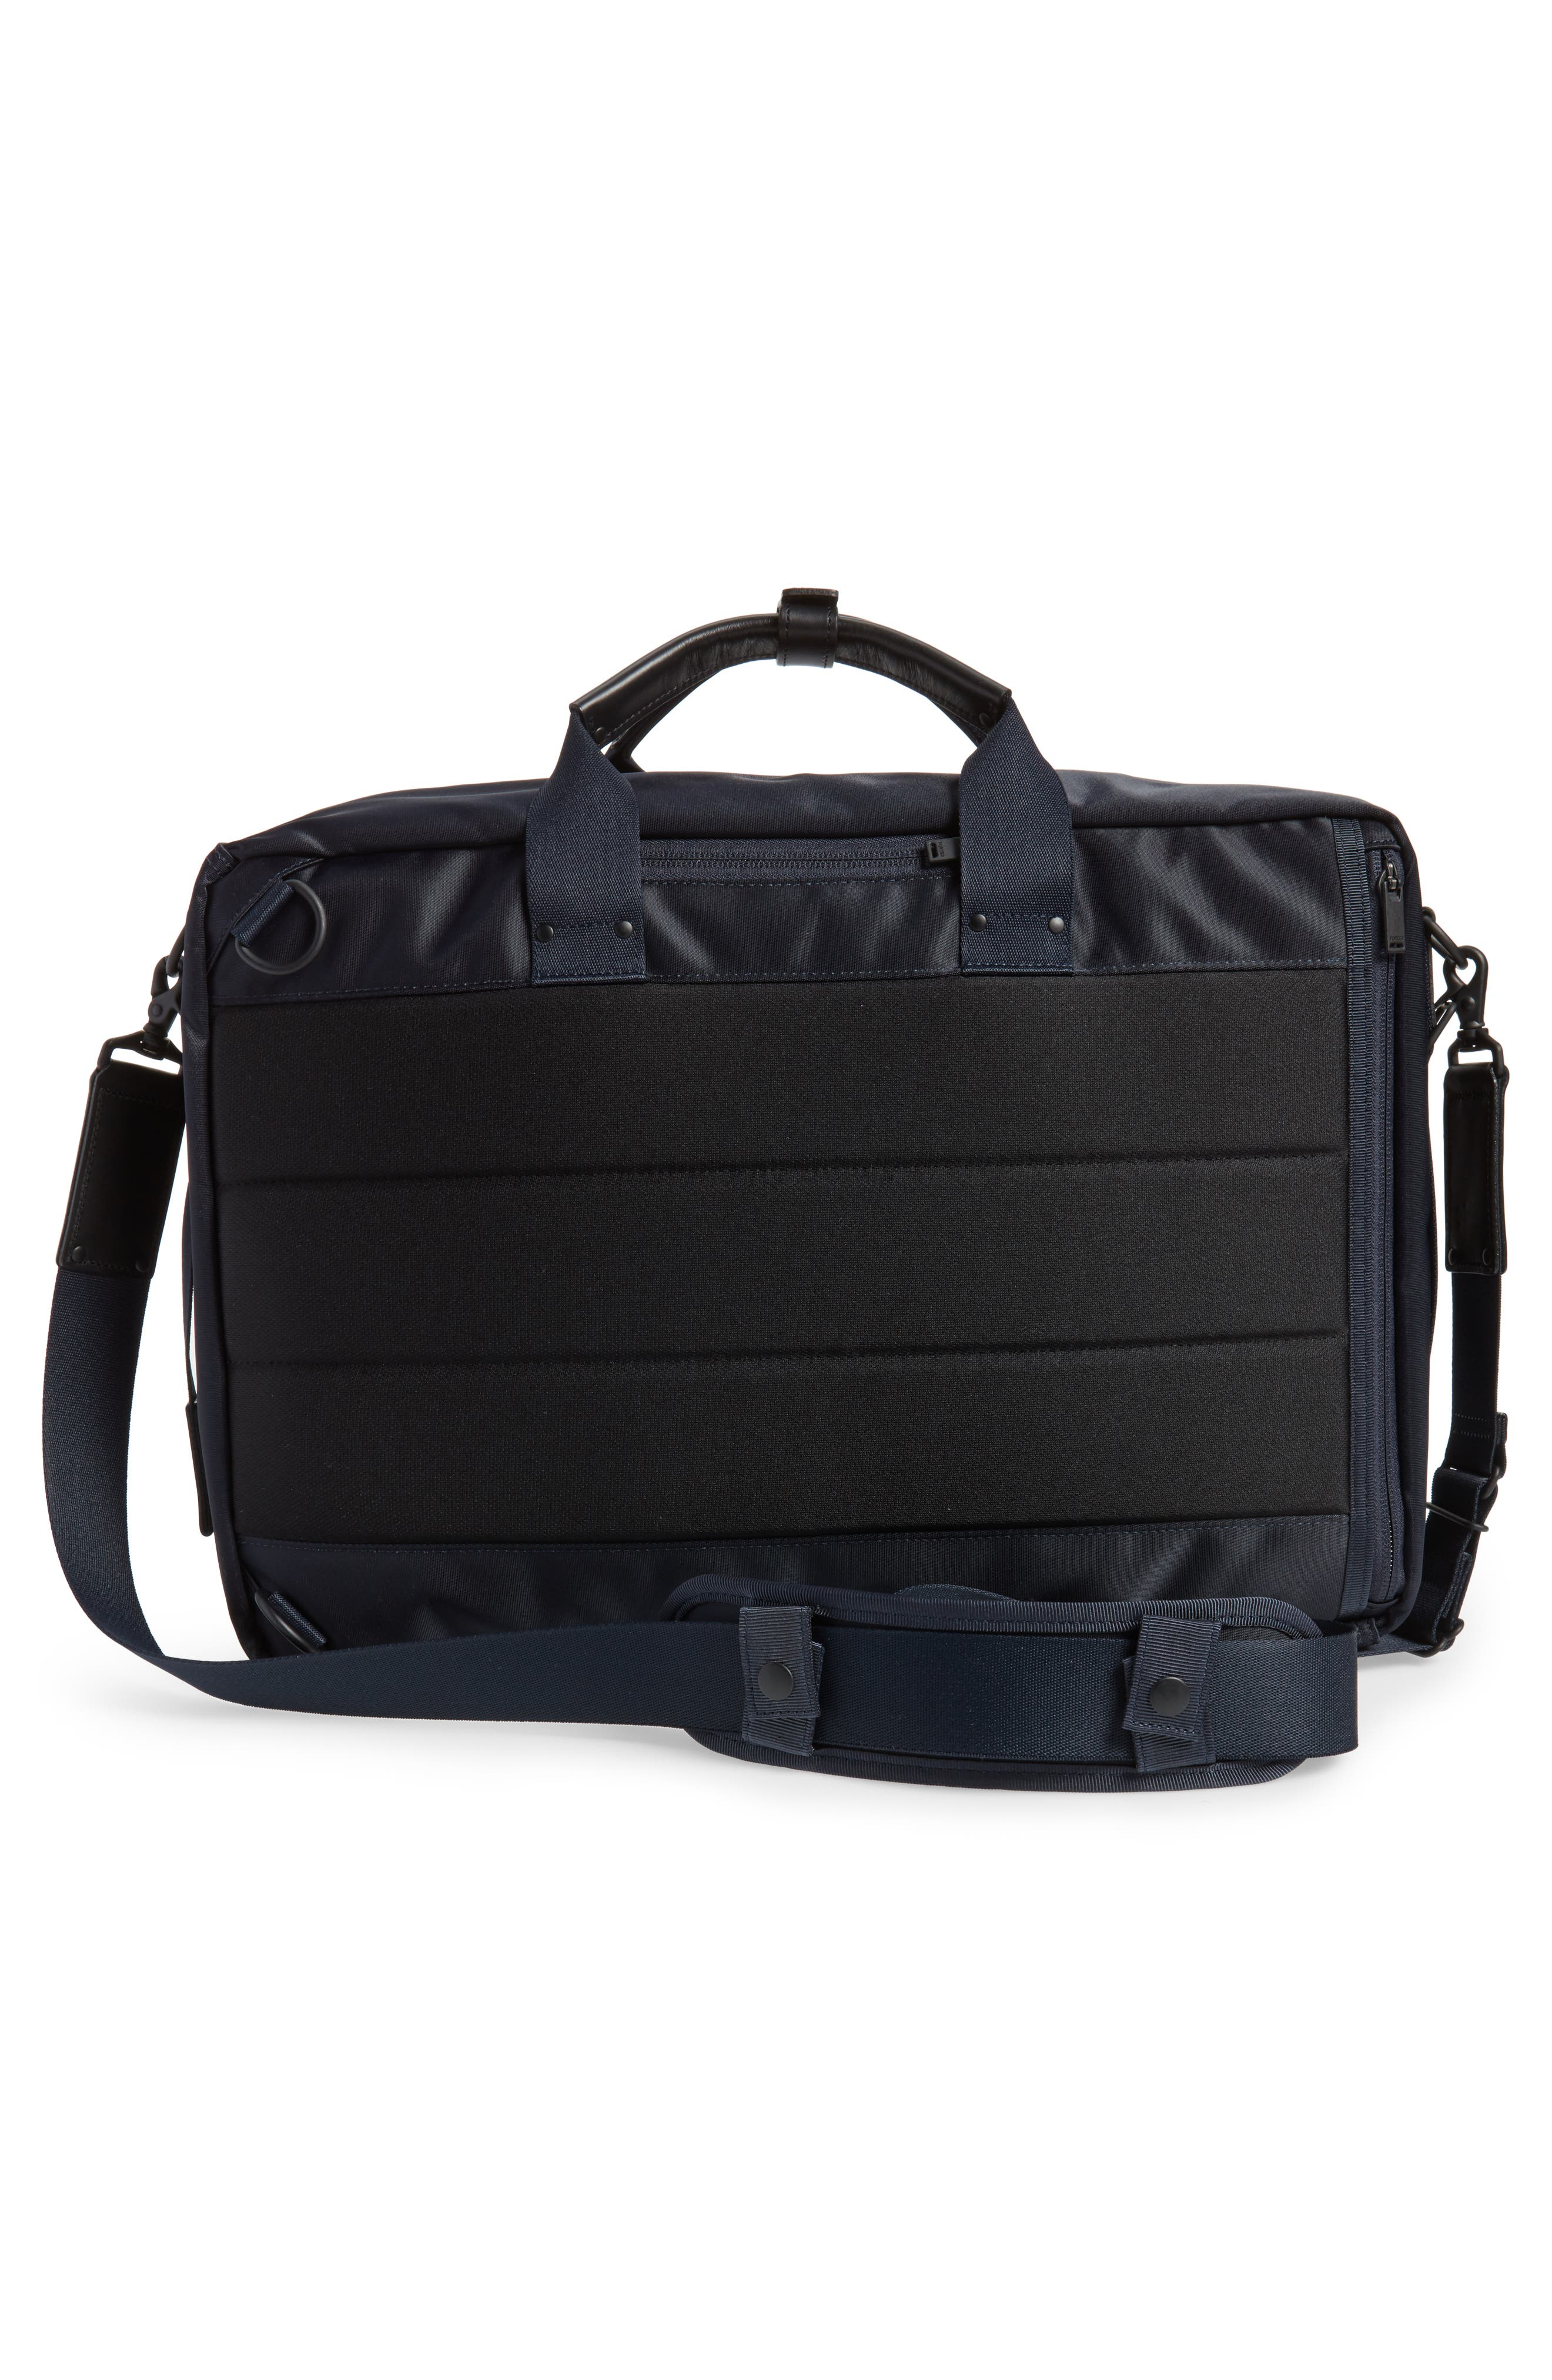 Porter-Yoshida & Co. Lift Convertible Briefcase,                             Alternate thumbnail 3, color,                             Navy